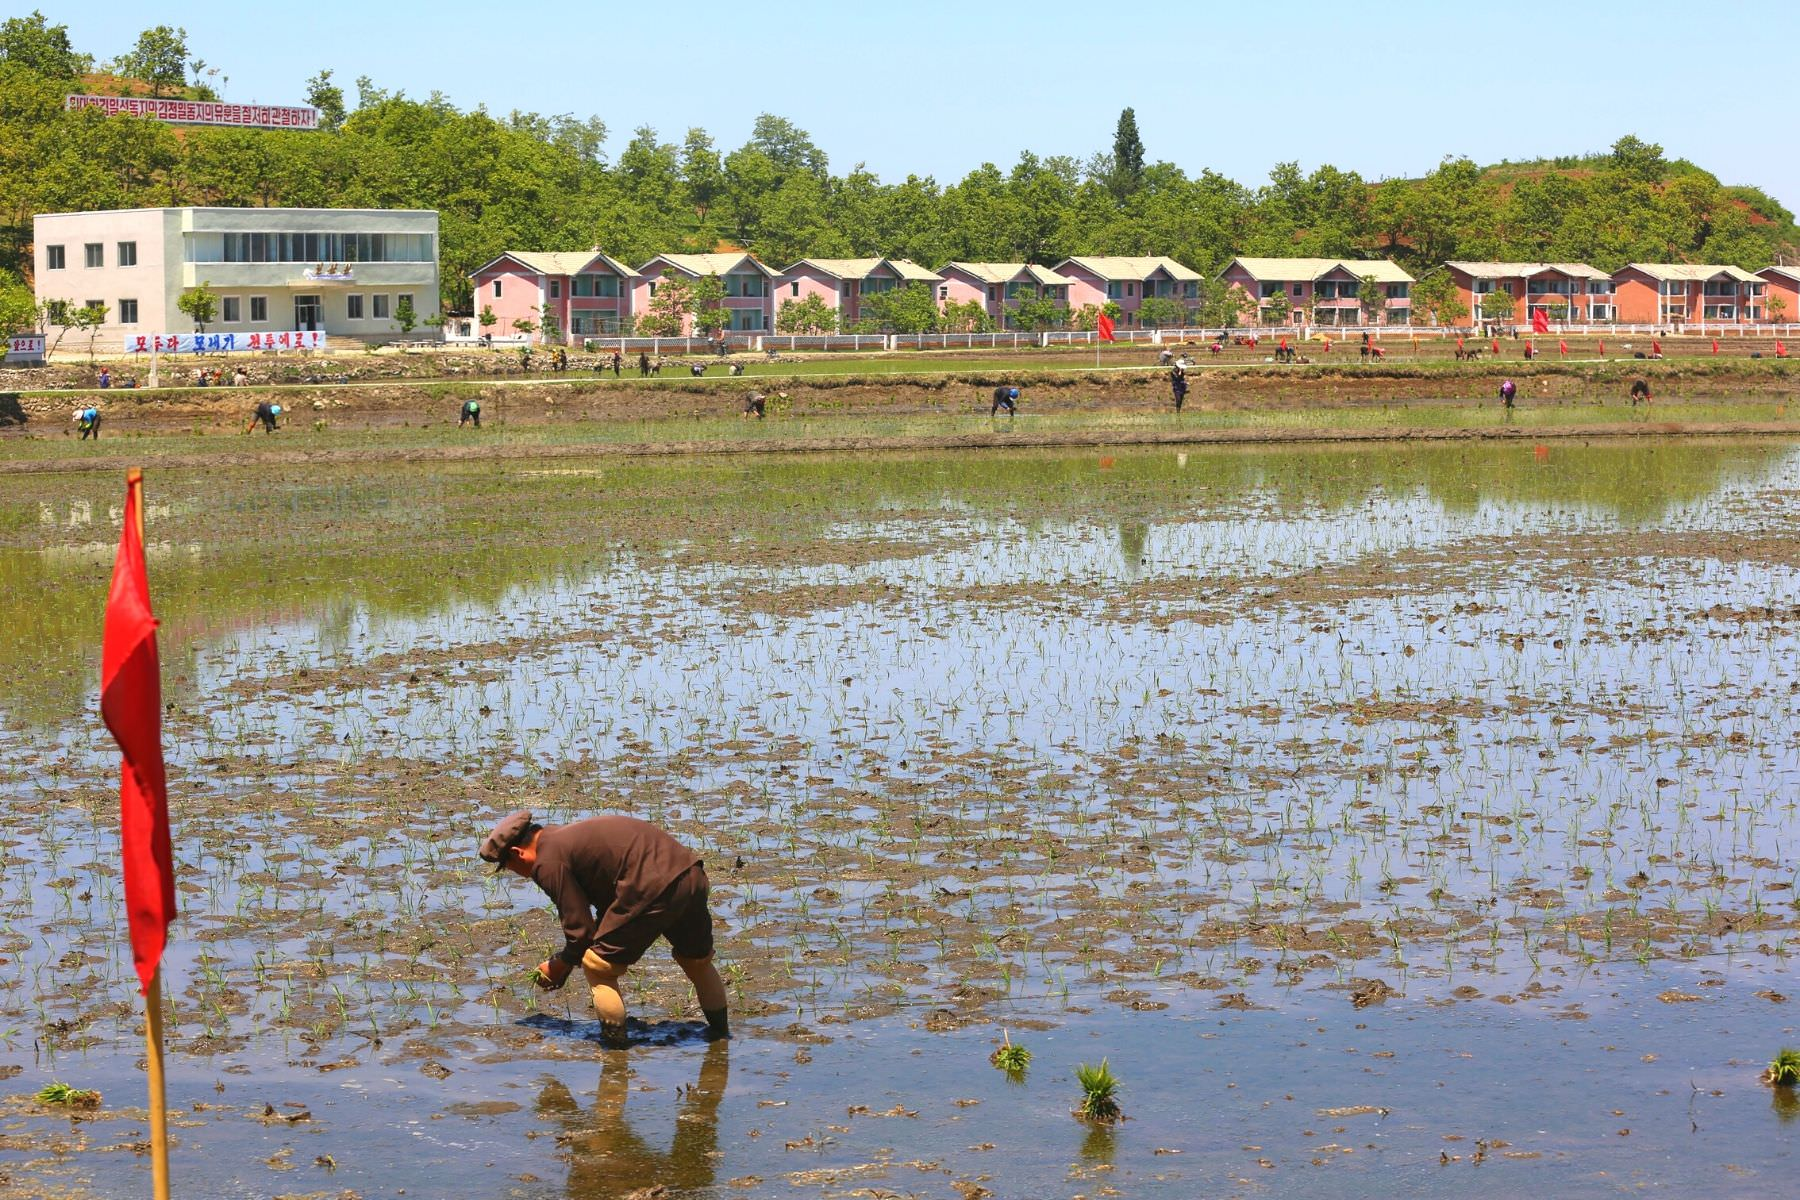 Chonsam Cooperative Farm in the outskirts of Wonsan City, North Korea (DPRK). Tour arranged by KTG Travel